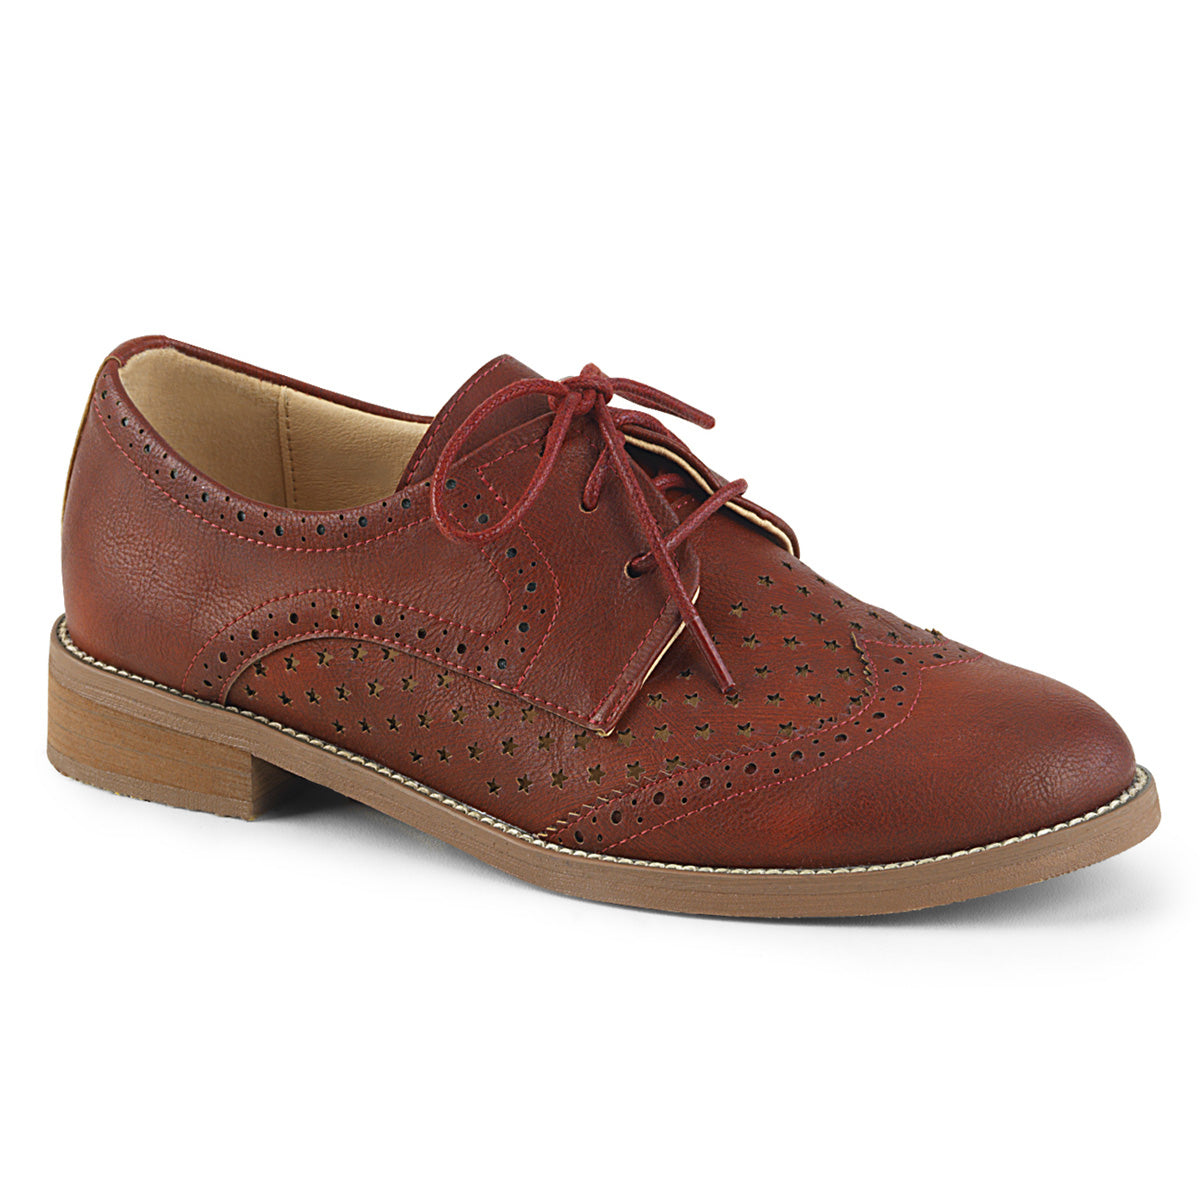 "1"" Heel Wingtip Oxford"